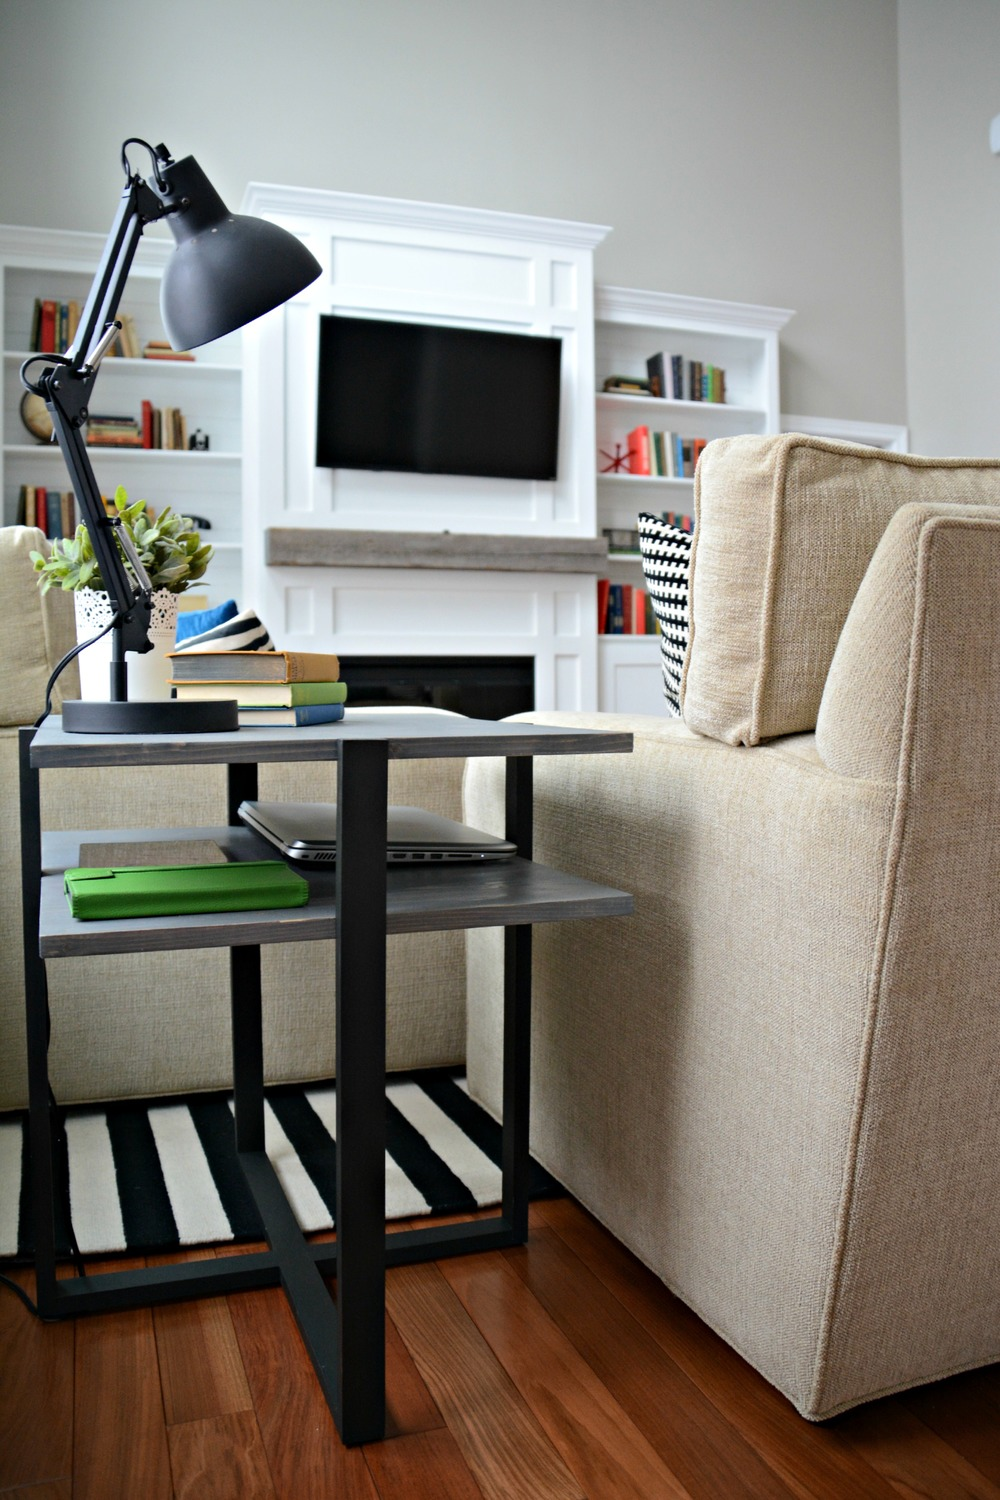 Diy Living Room End Table Decor And The Dog